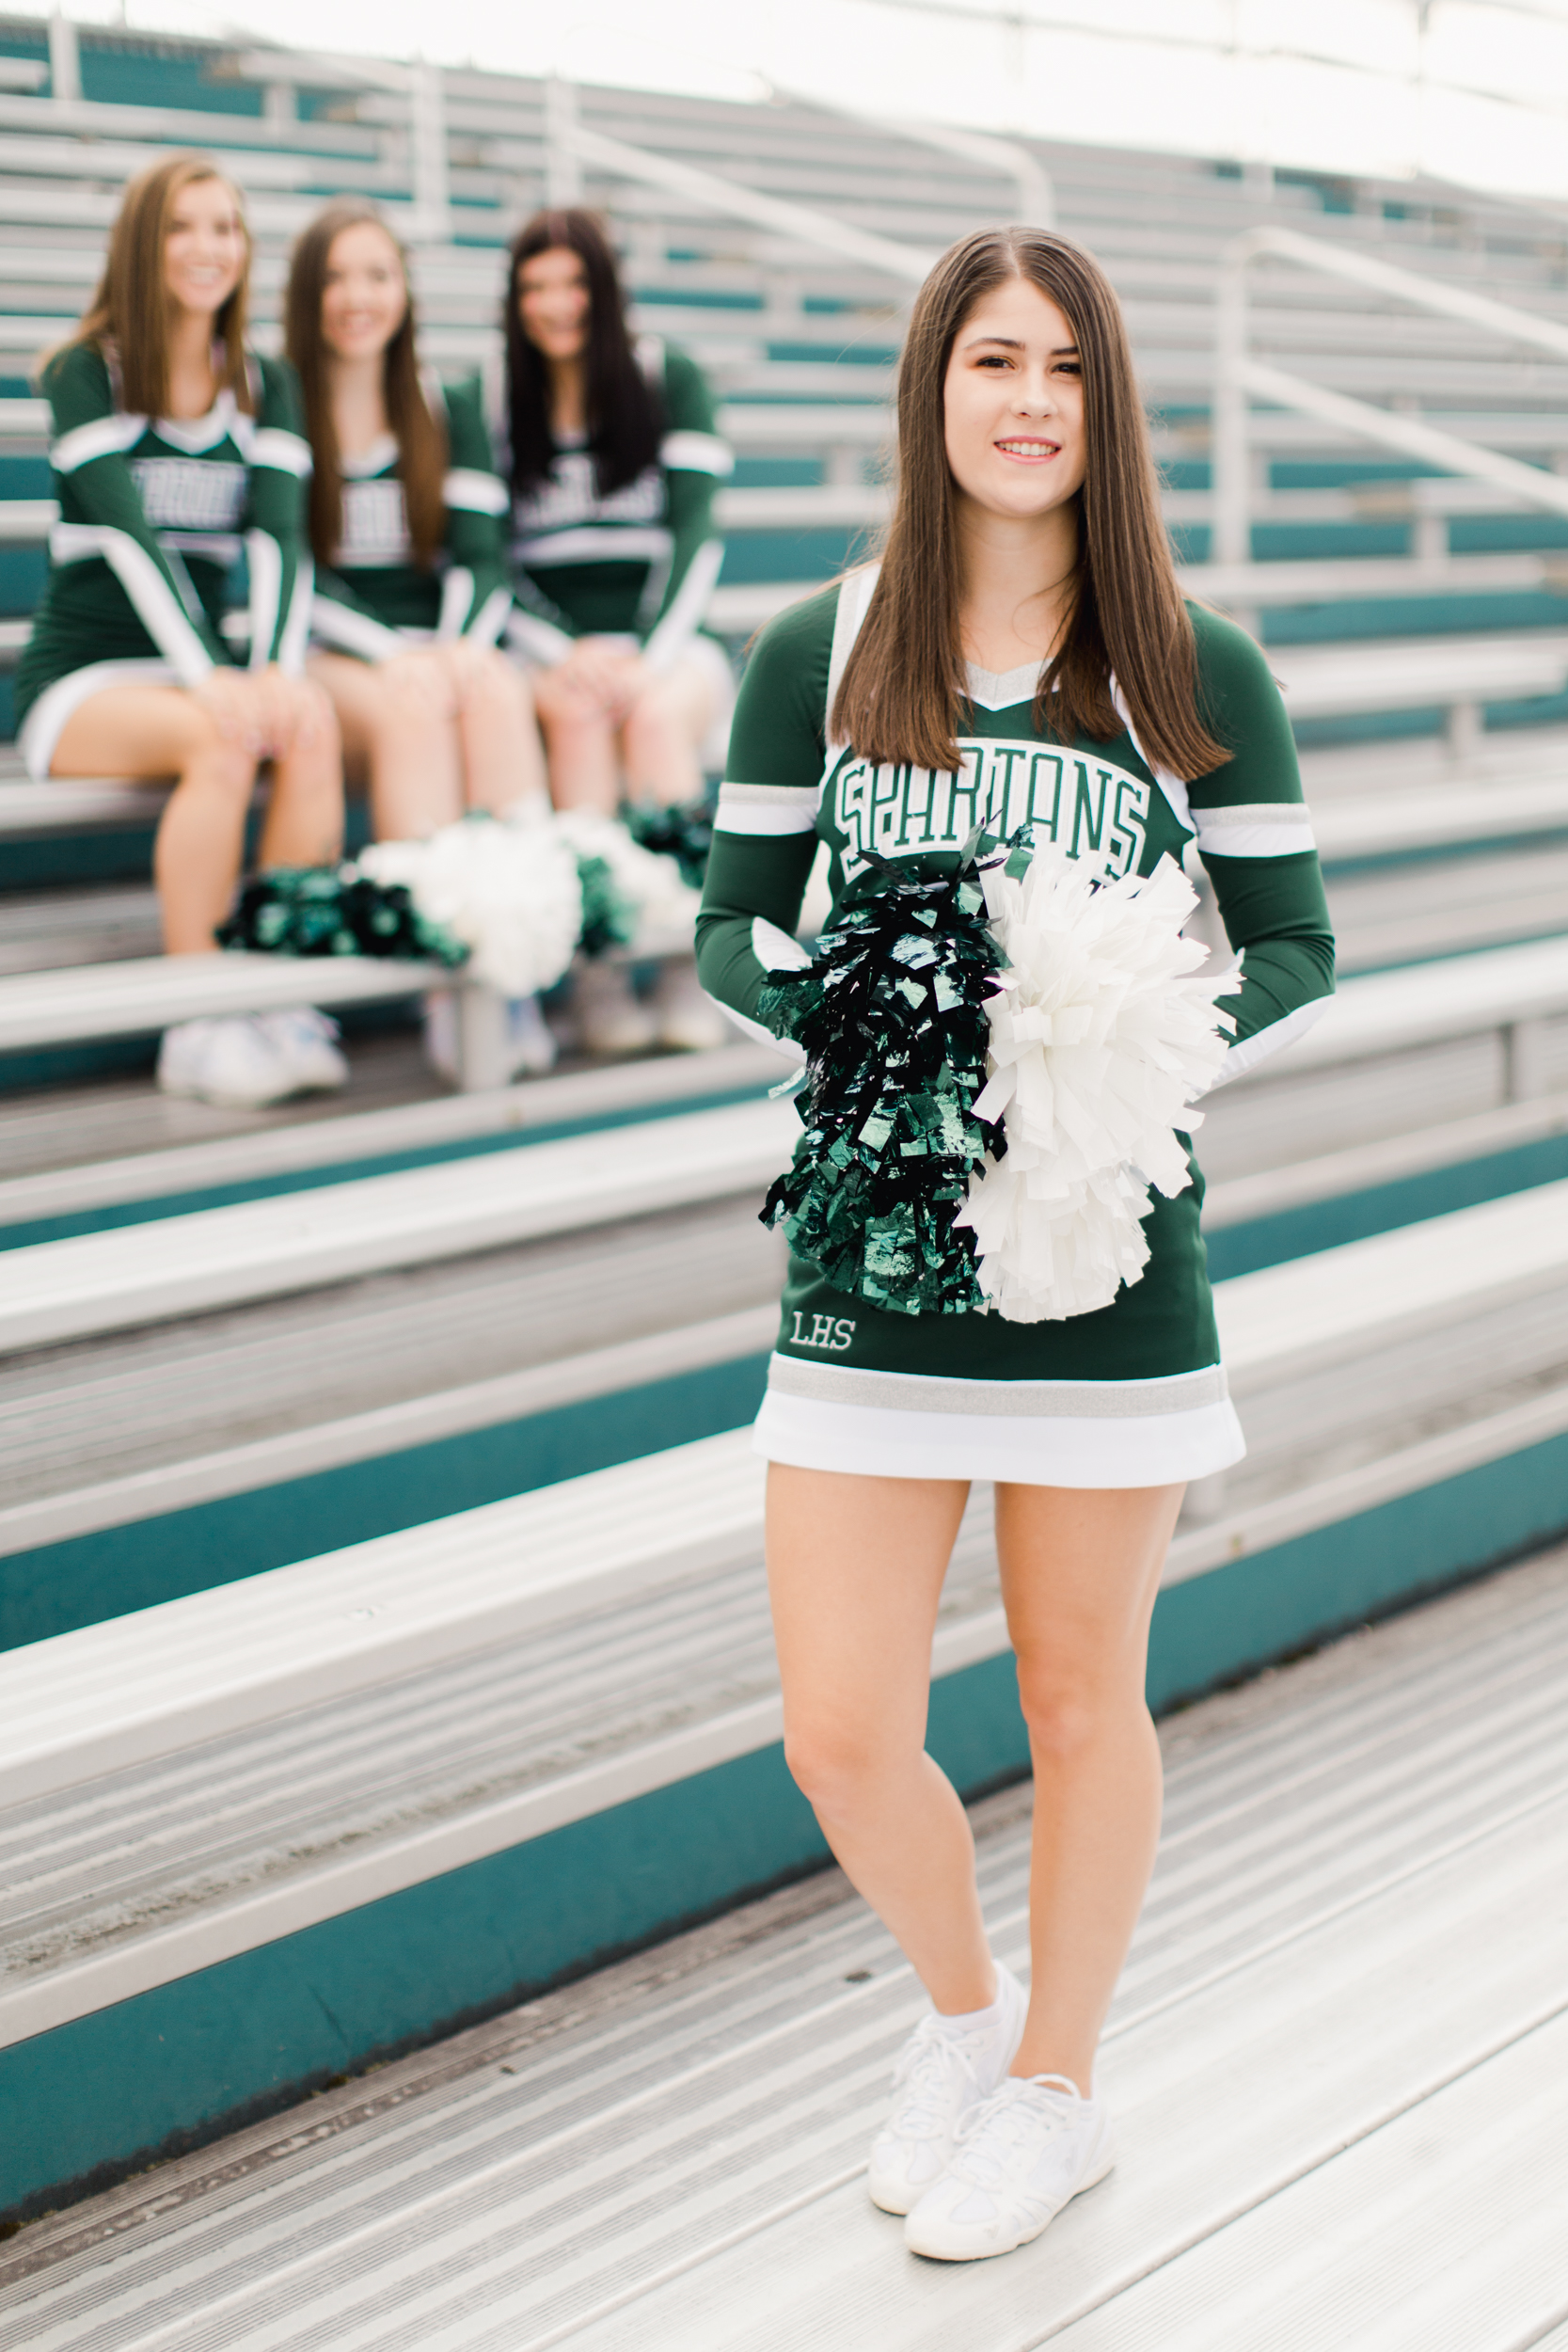 Laurel_HS_Varisty_Senior_2019_Cheerleaders (4 of 27).jpg